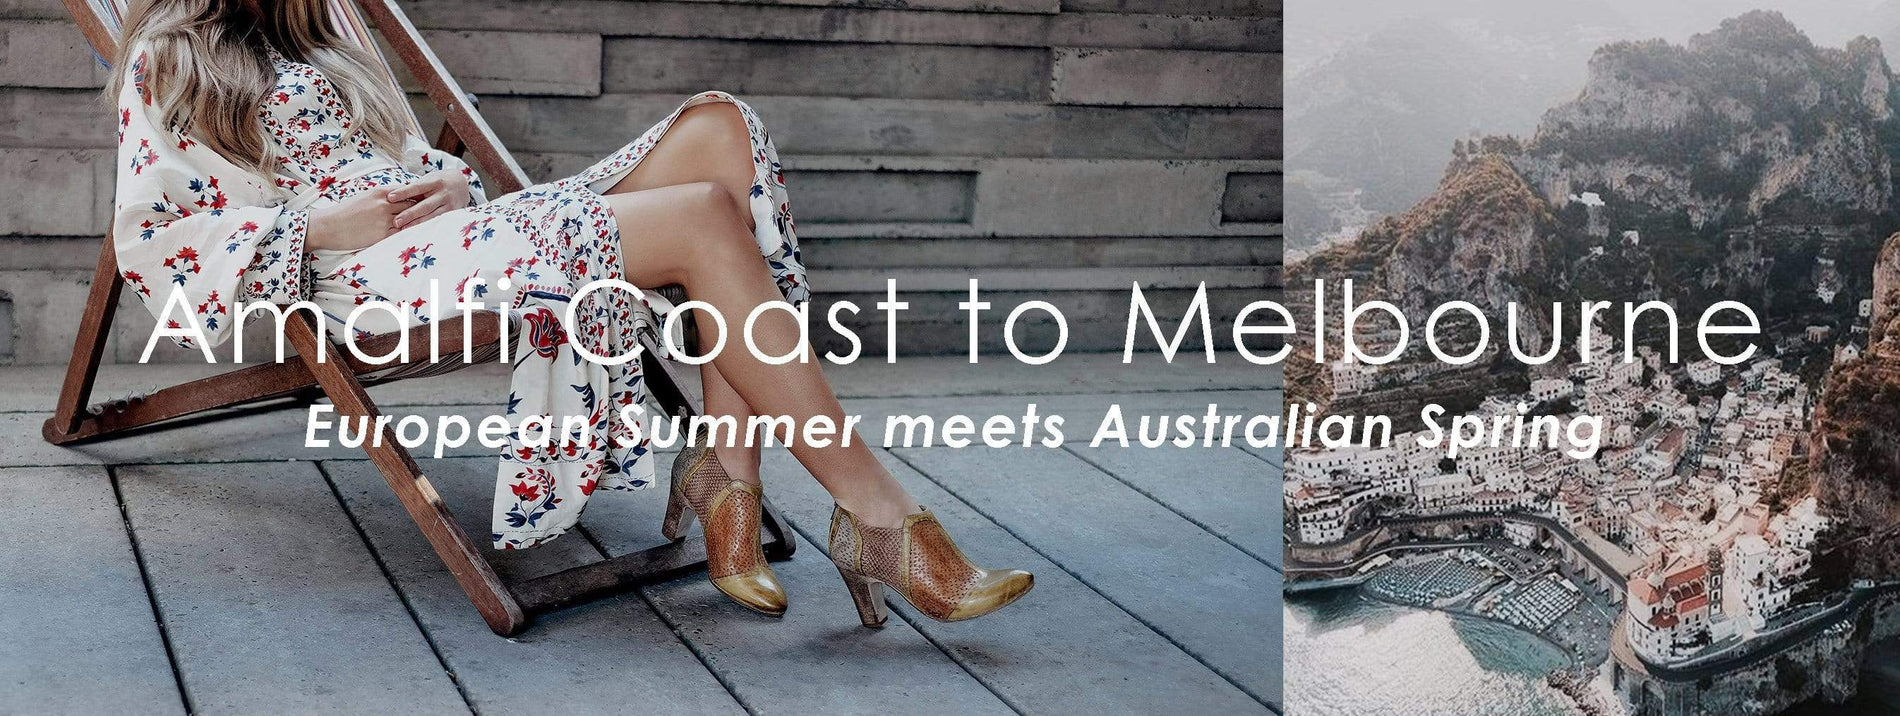 AMALFI COAST TO MELBOURNE- European Summer meets Australian Spring